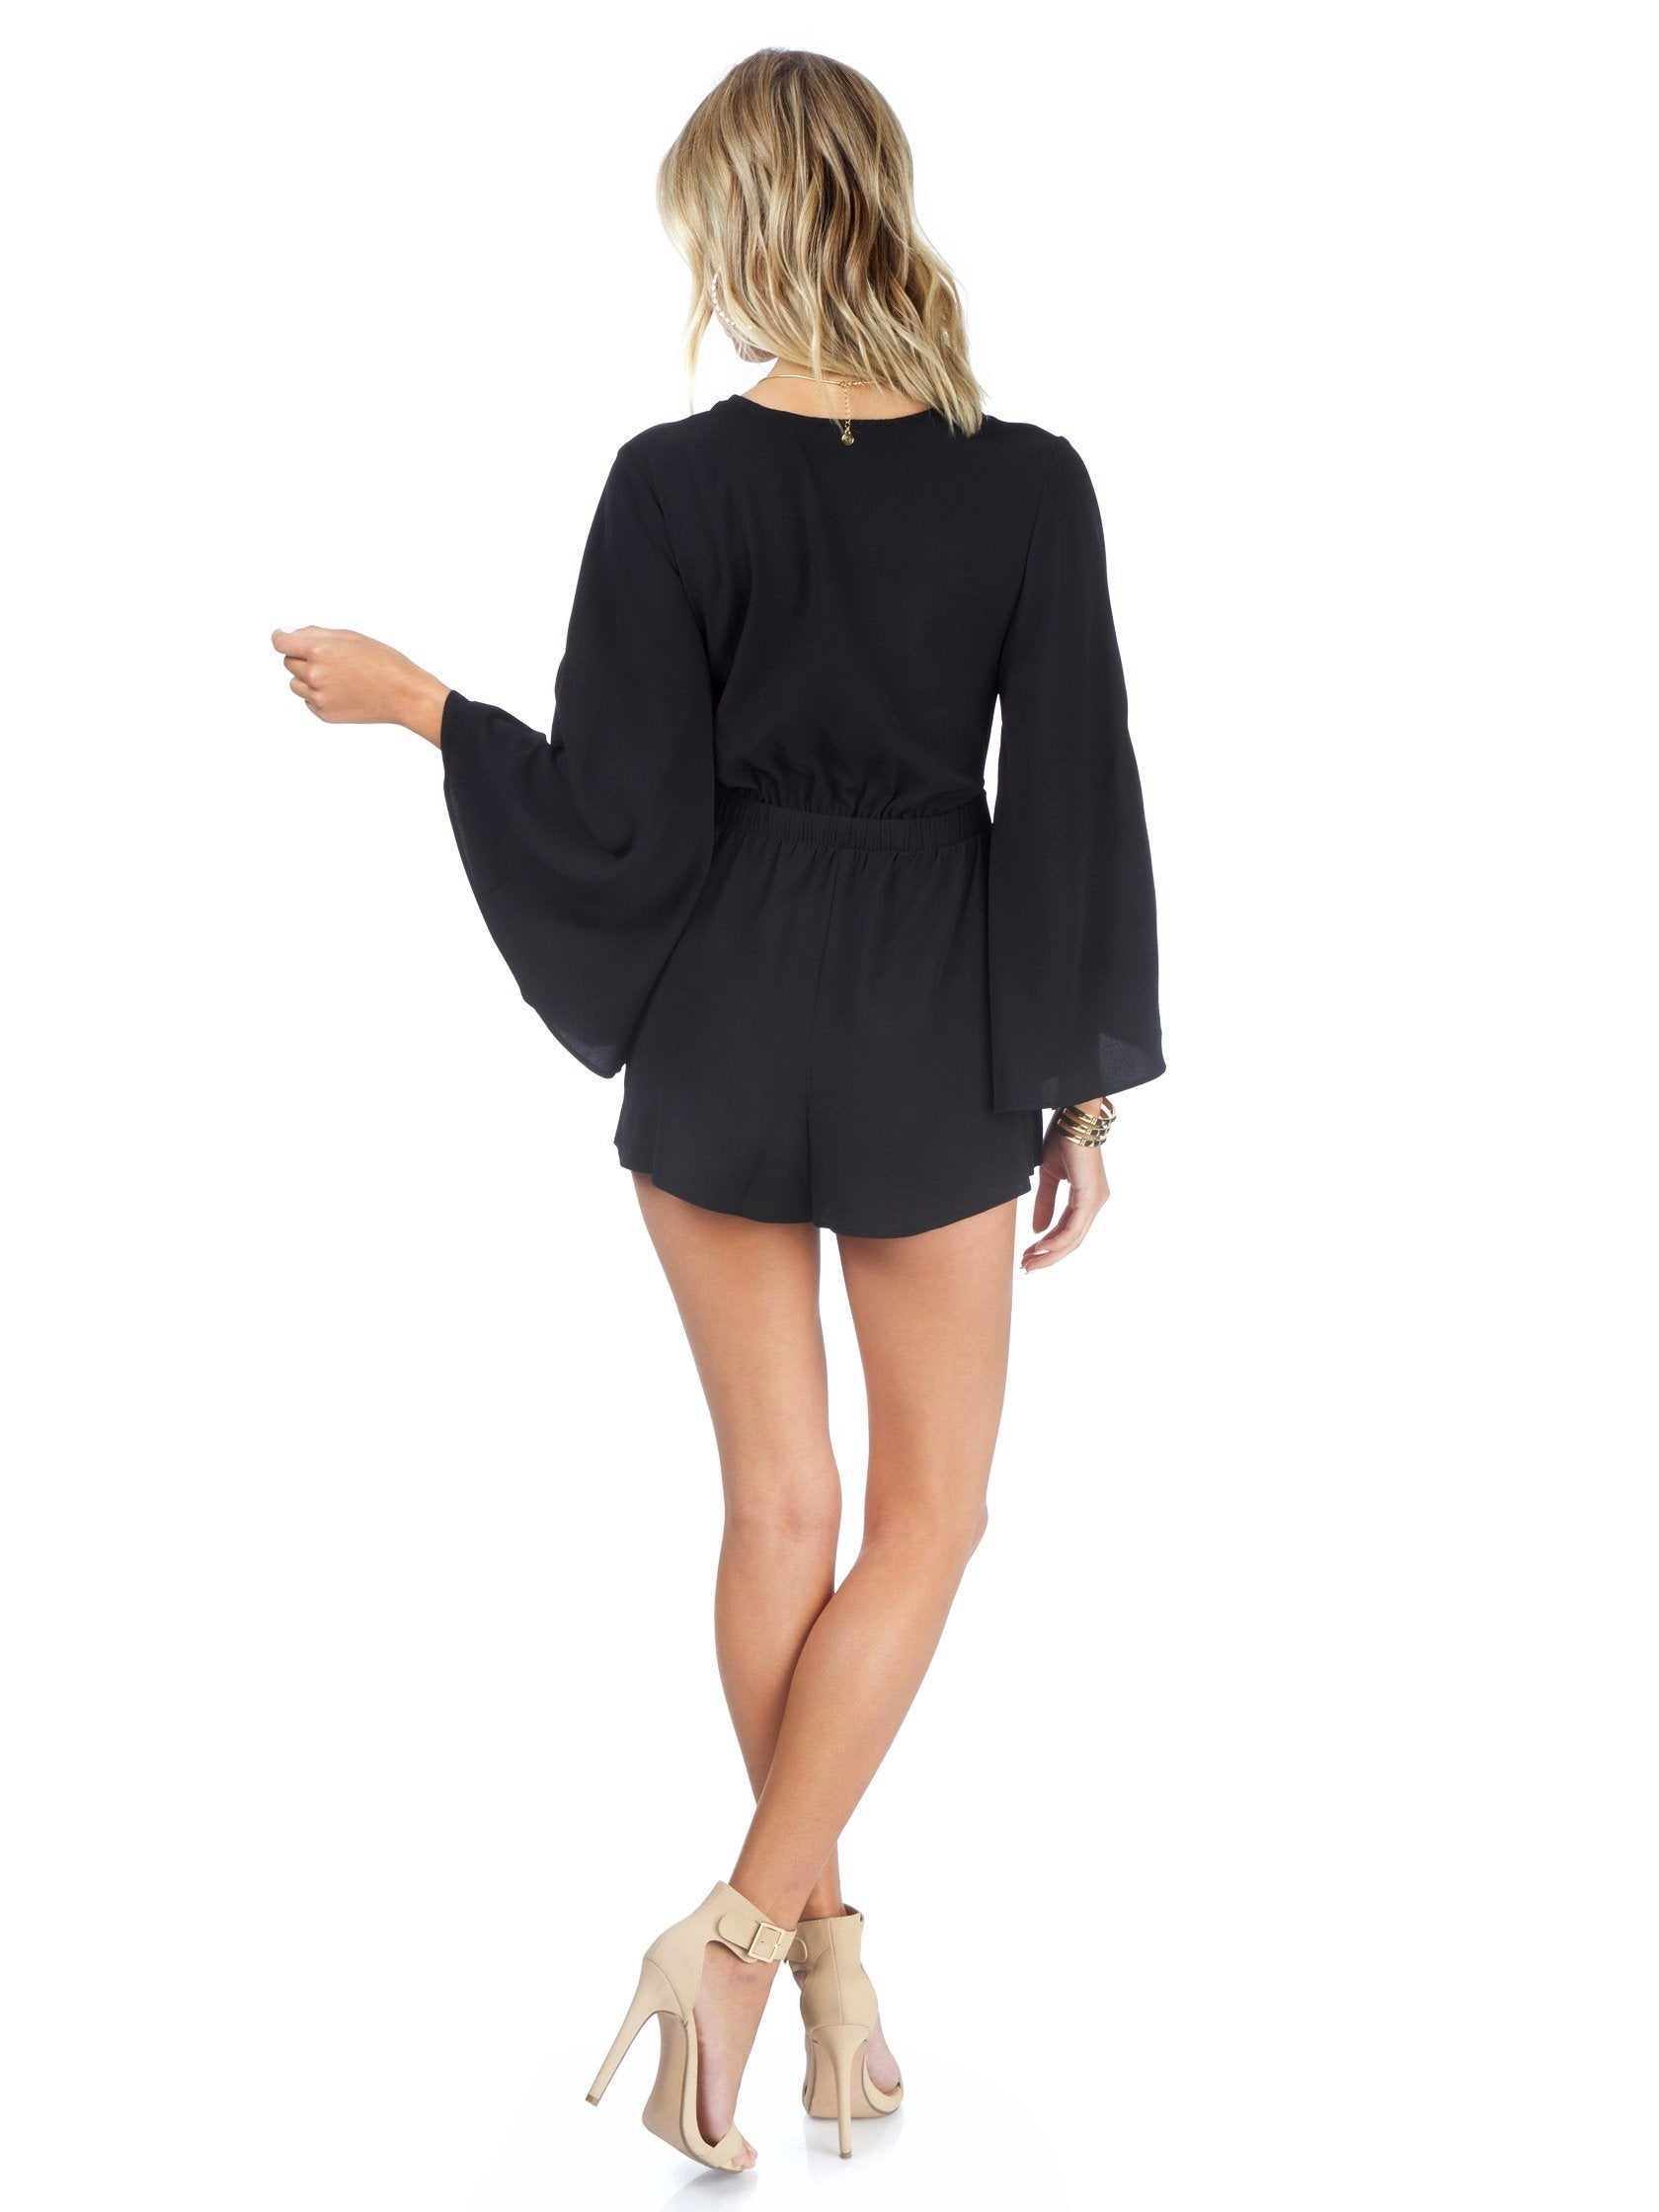 Women wearing a romper rental from Show Me Your Mumu called Charleston Romper